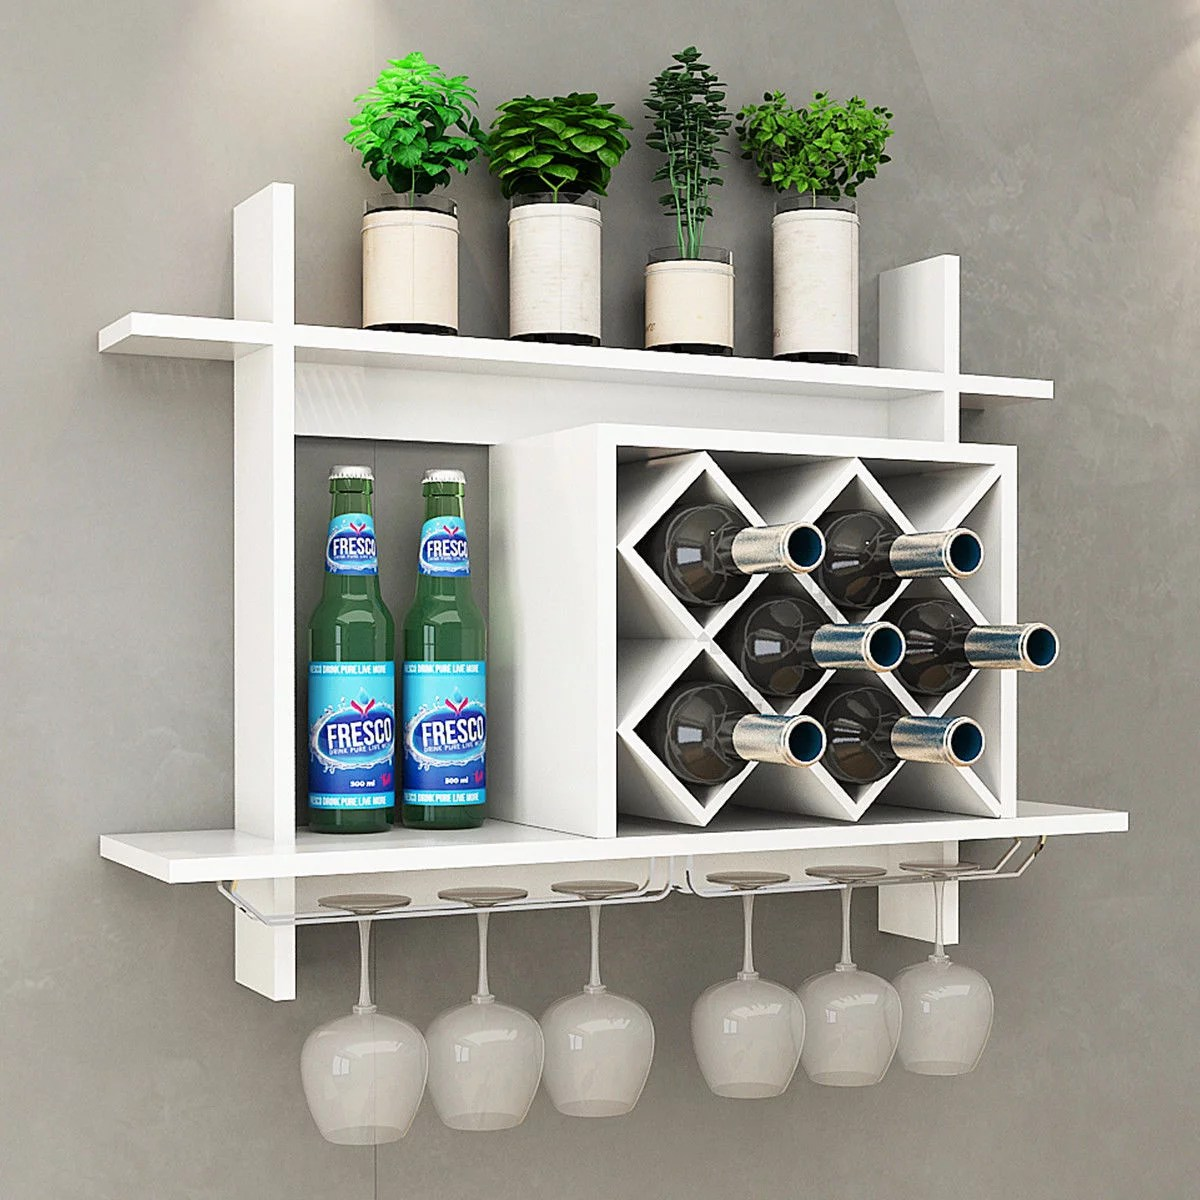 Gymax Wall Mount Wine Rack W Glass Holder Storage Shelf